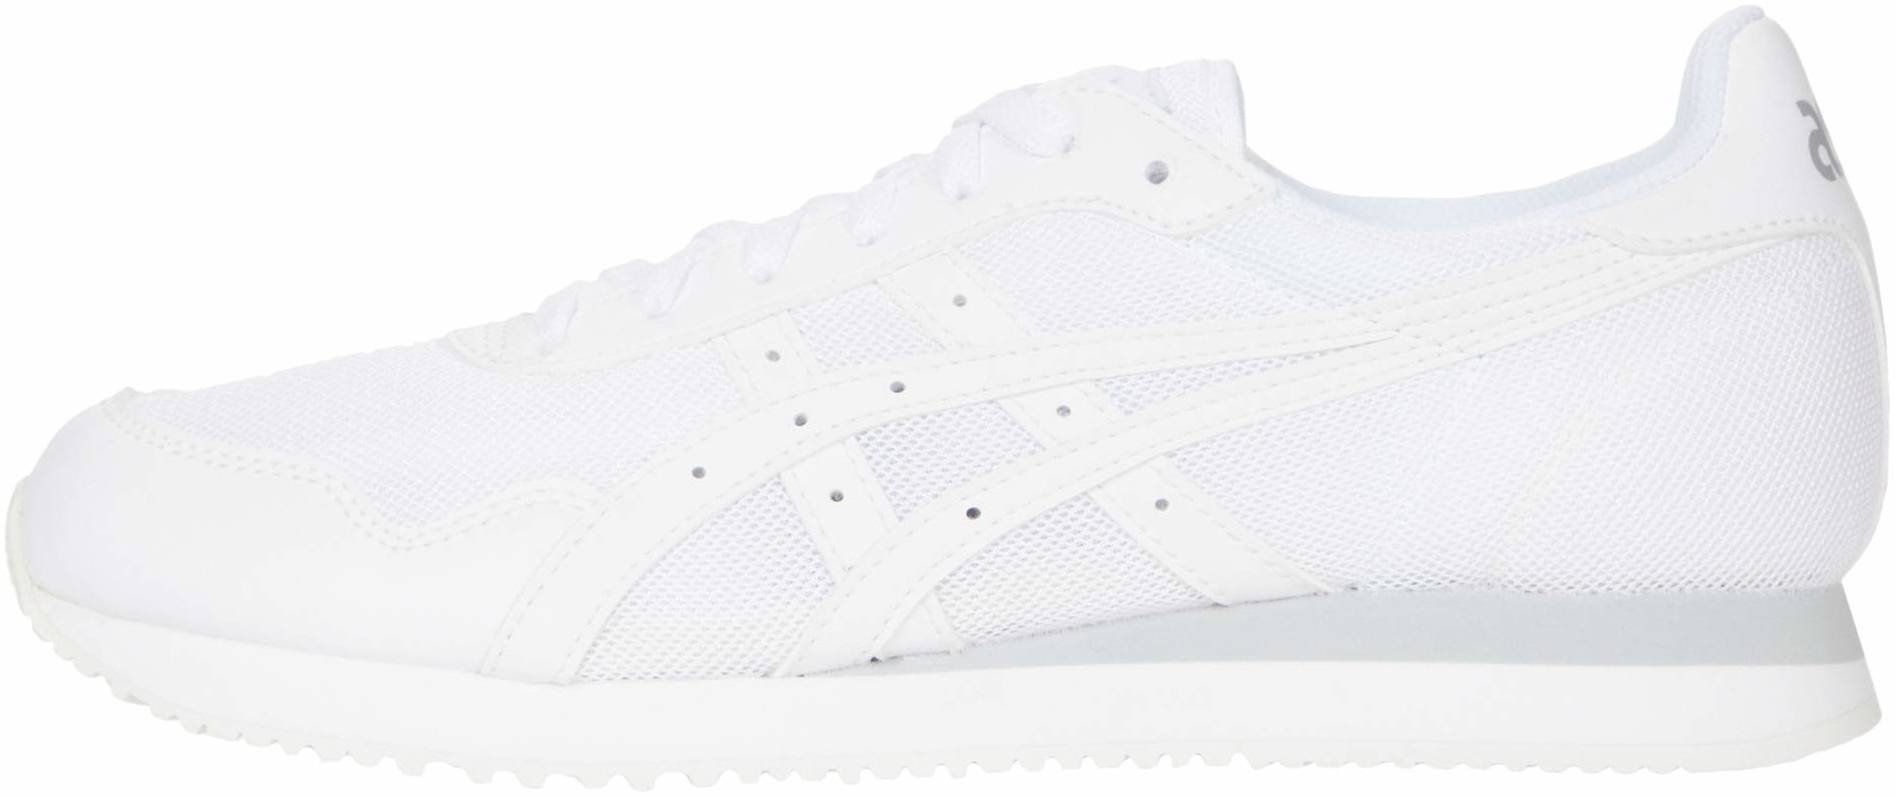 Asics Tiger Runner sneakers in 10 colors (only $37) | RunRepeat